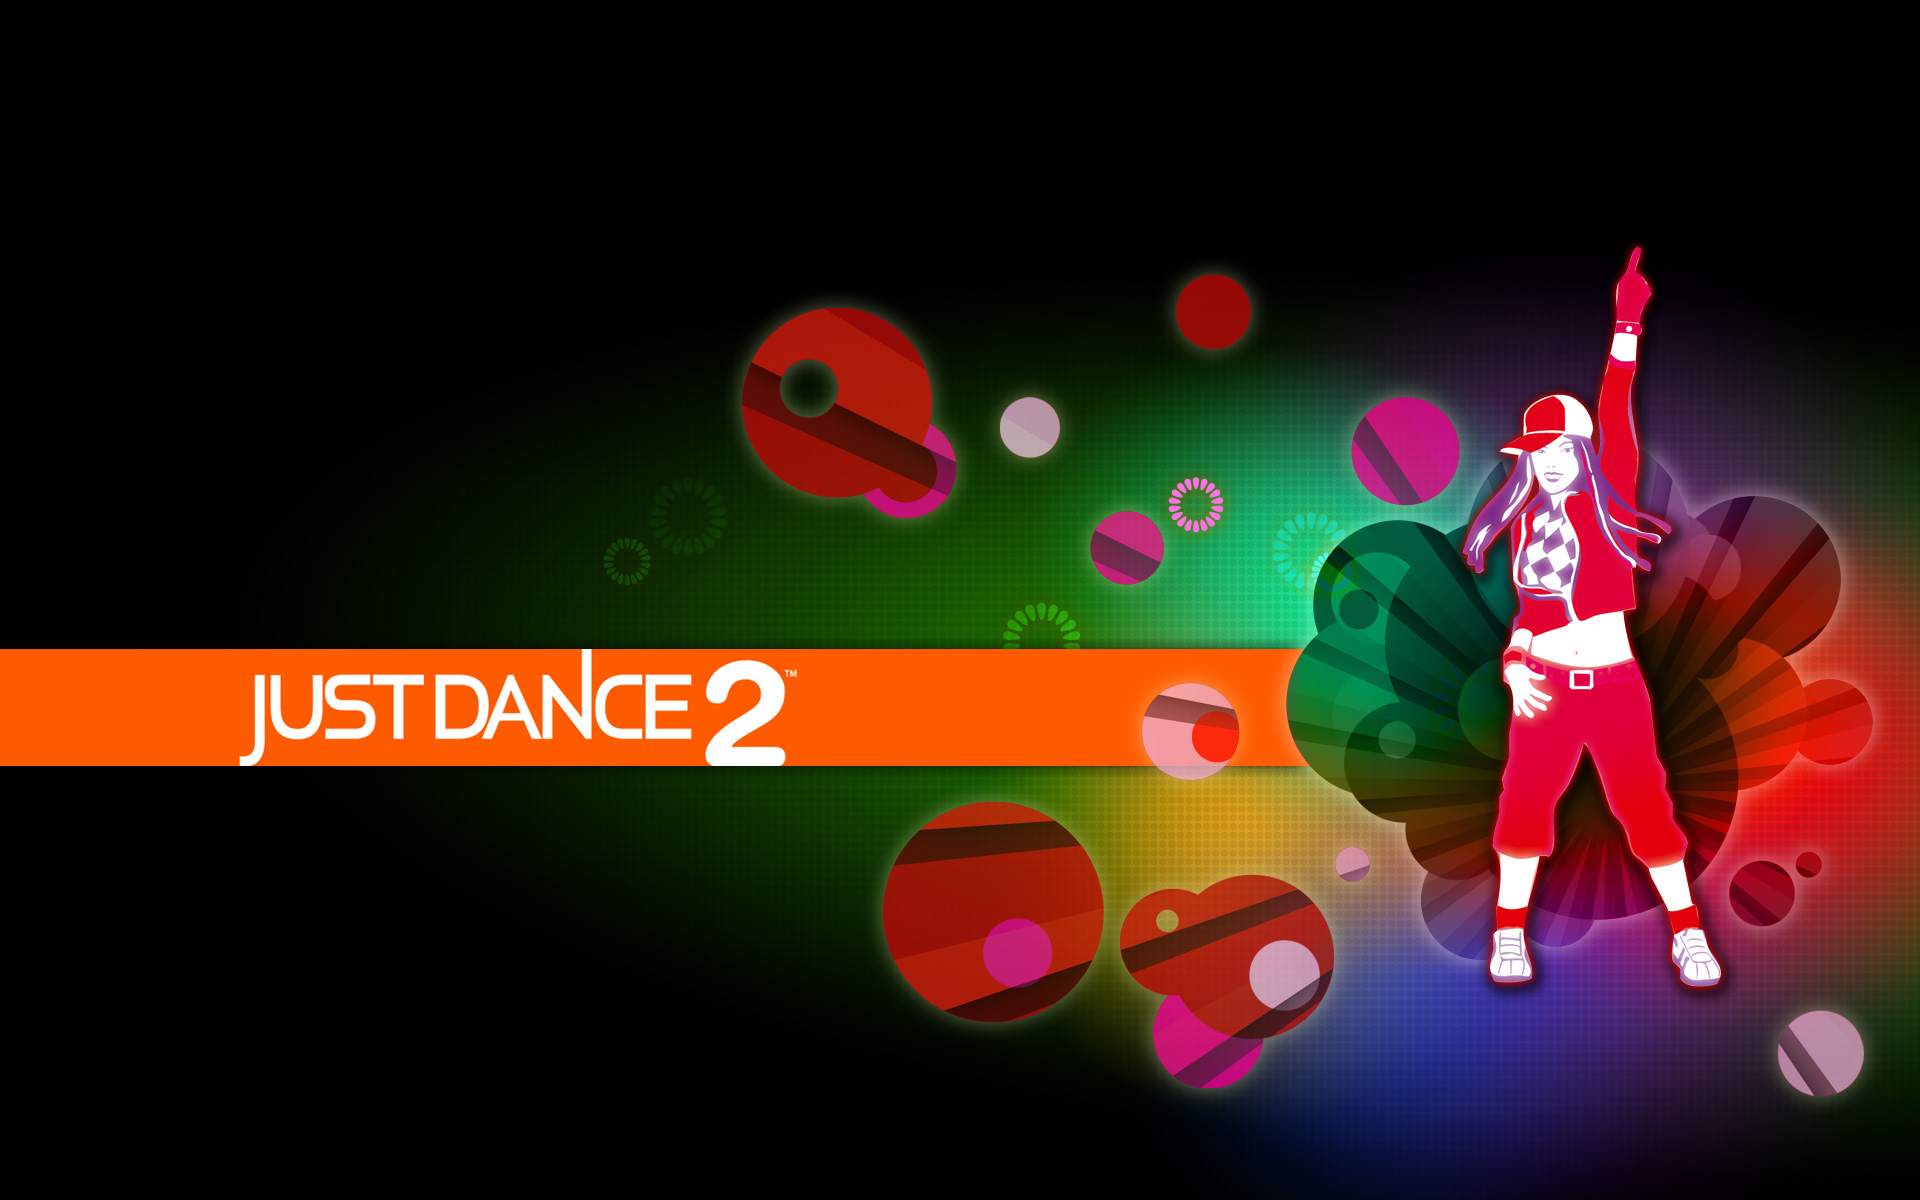 Just Dance 3 Windows 7 Theme For Dancers Not Humans 1920x1200